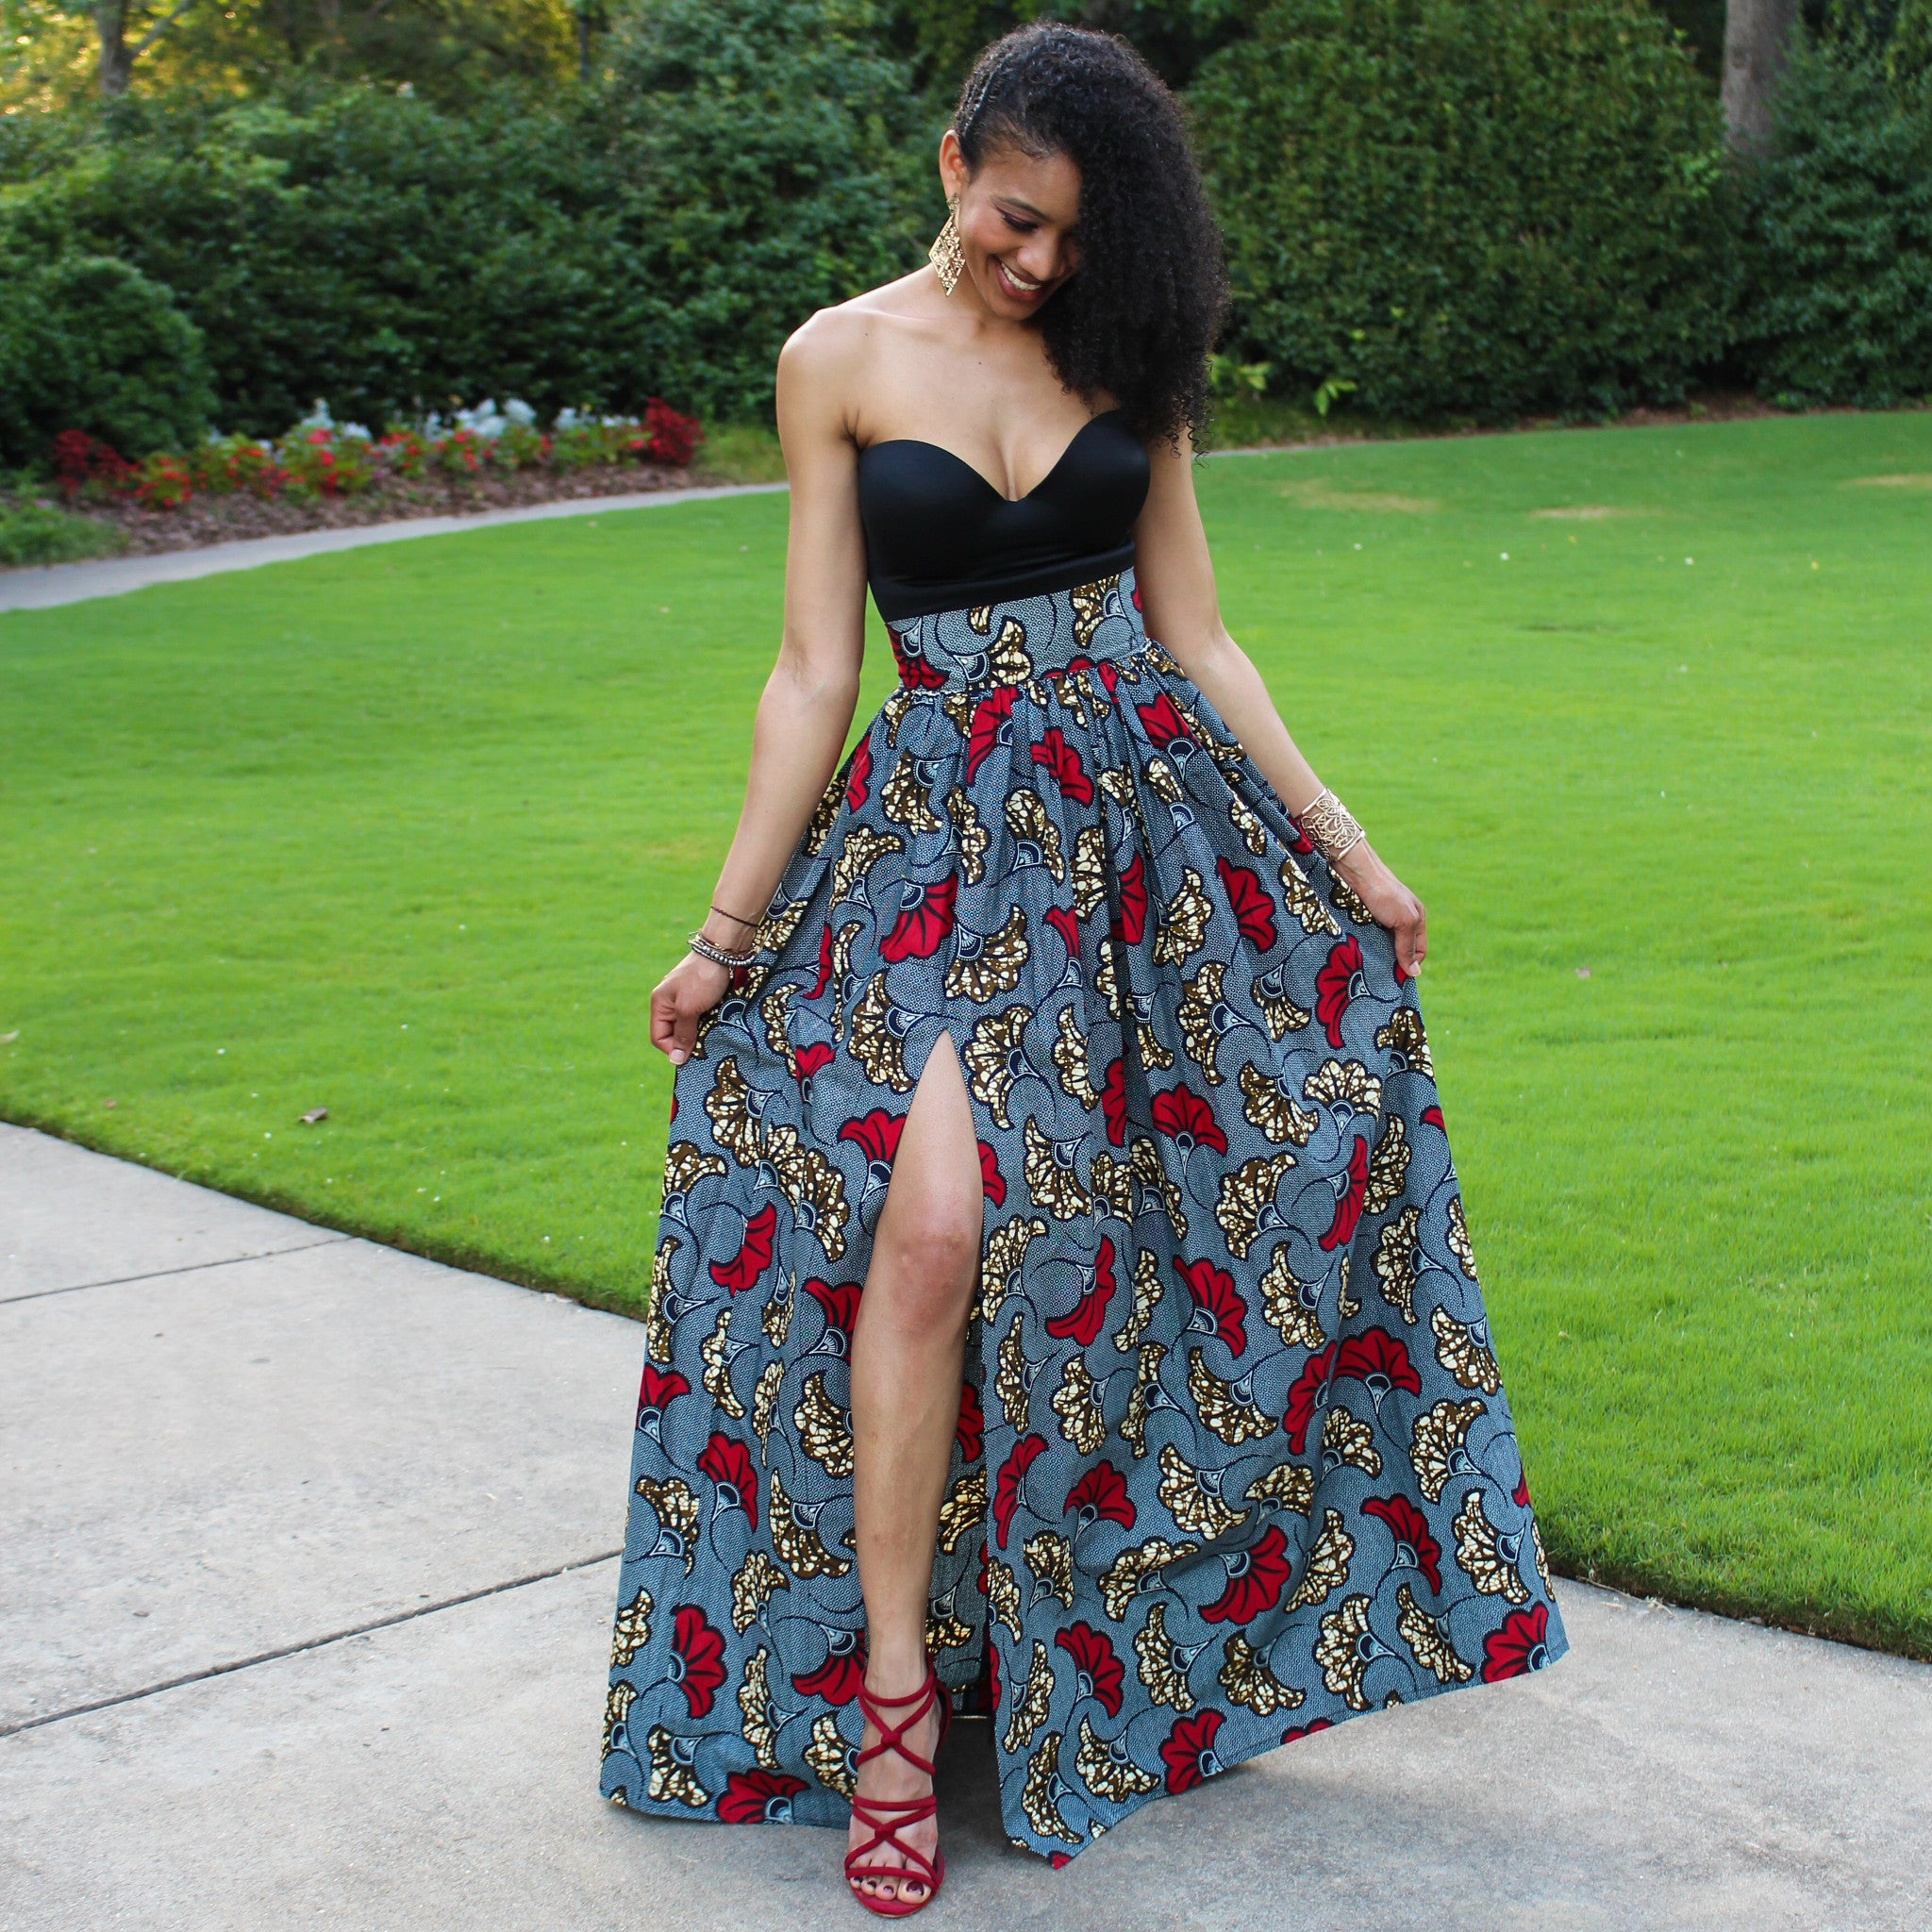 Waisted High maxi skirt with split pictures 2019